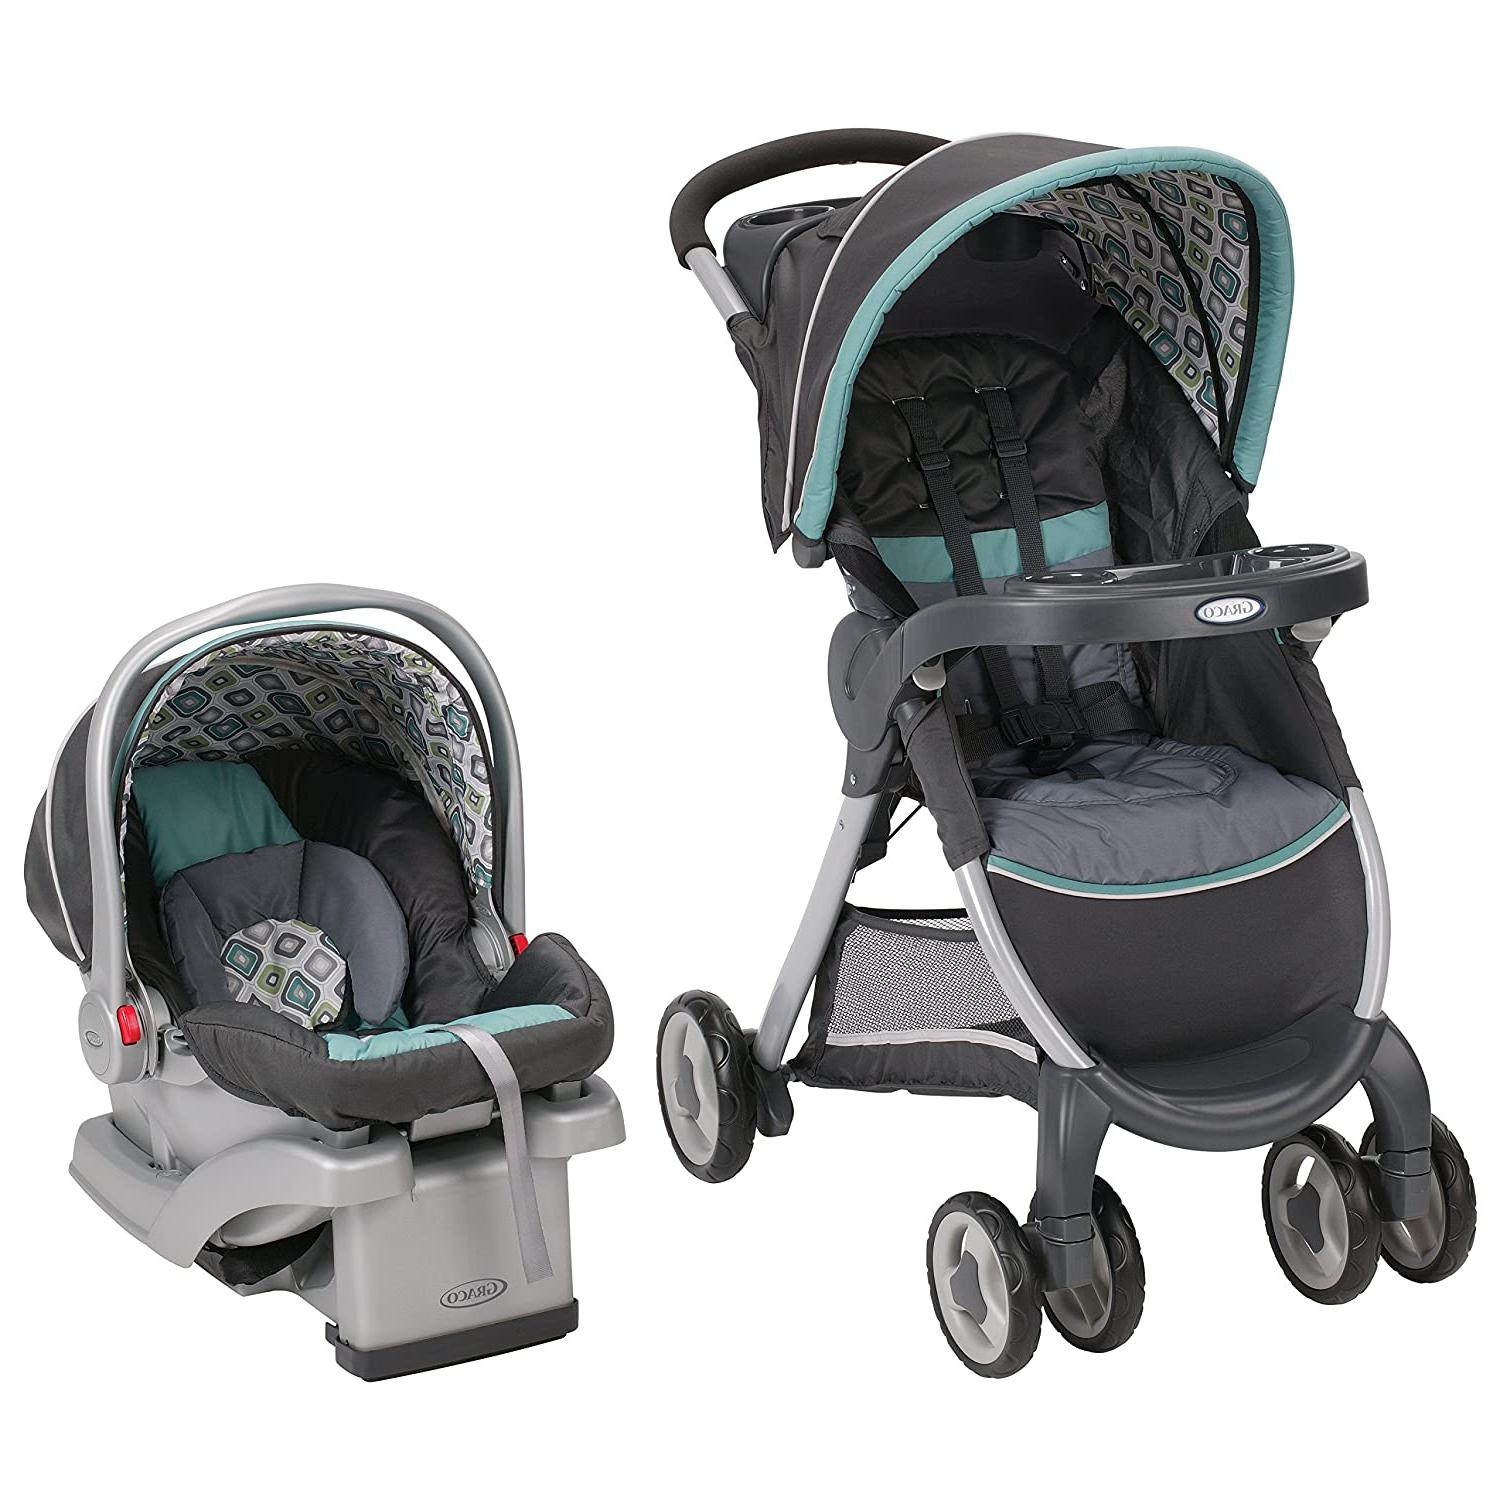 Graco FastAction Fold Click Connect Travel System Stroller,